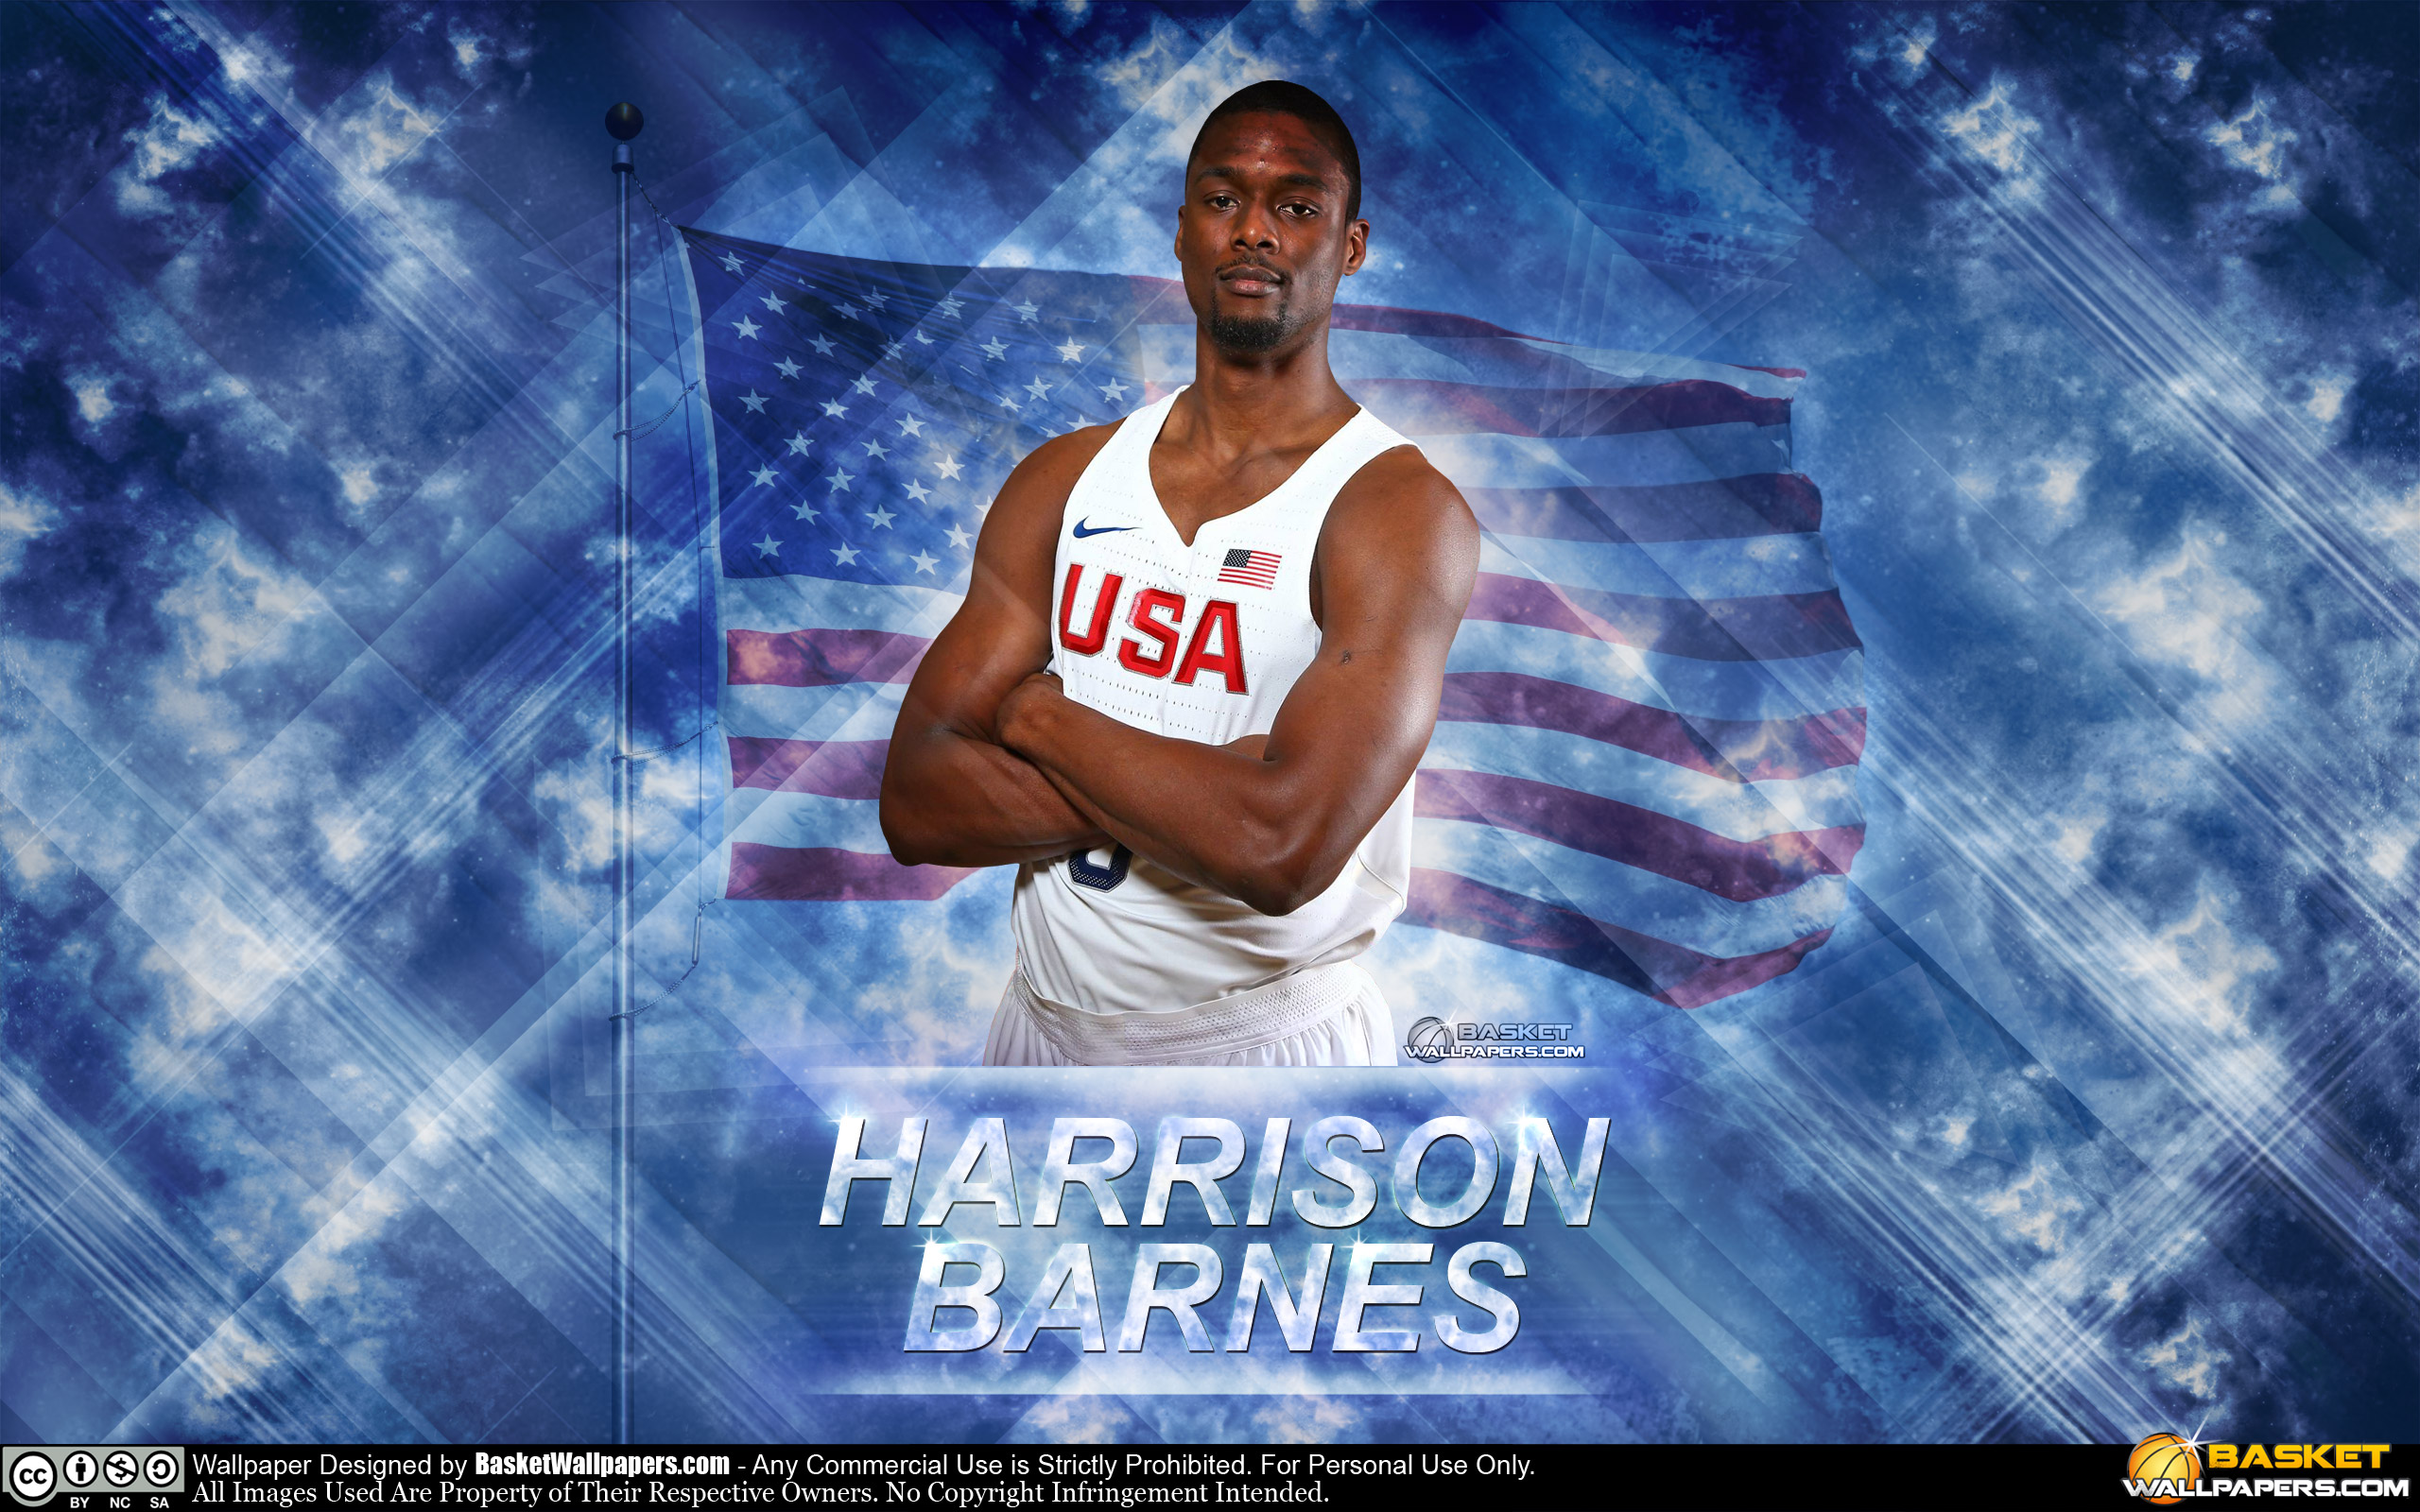 Harrison Barnes USA 2016 Olympics Wallpaper